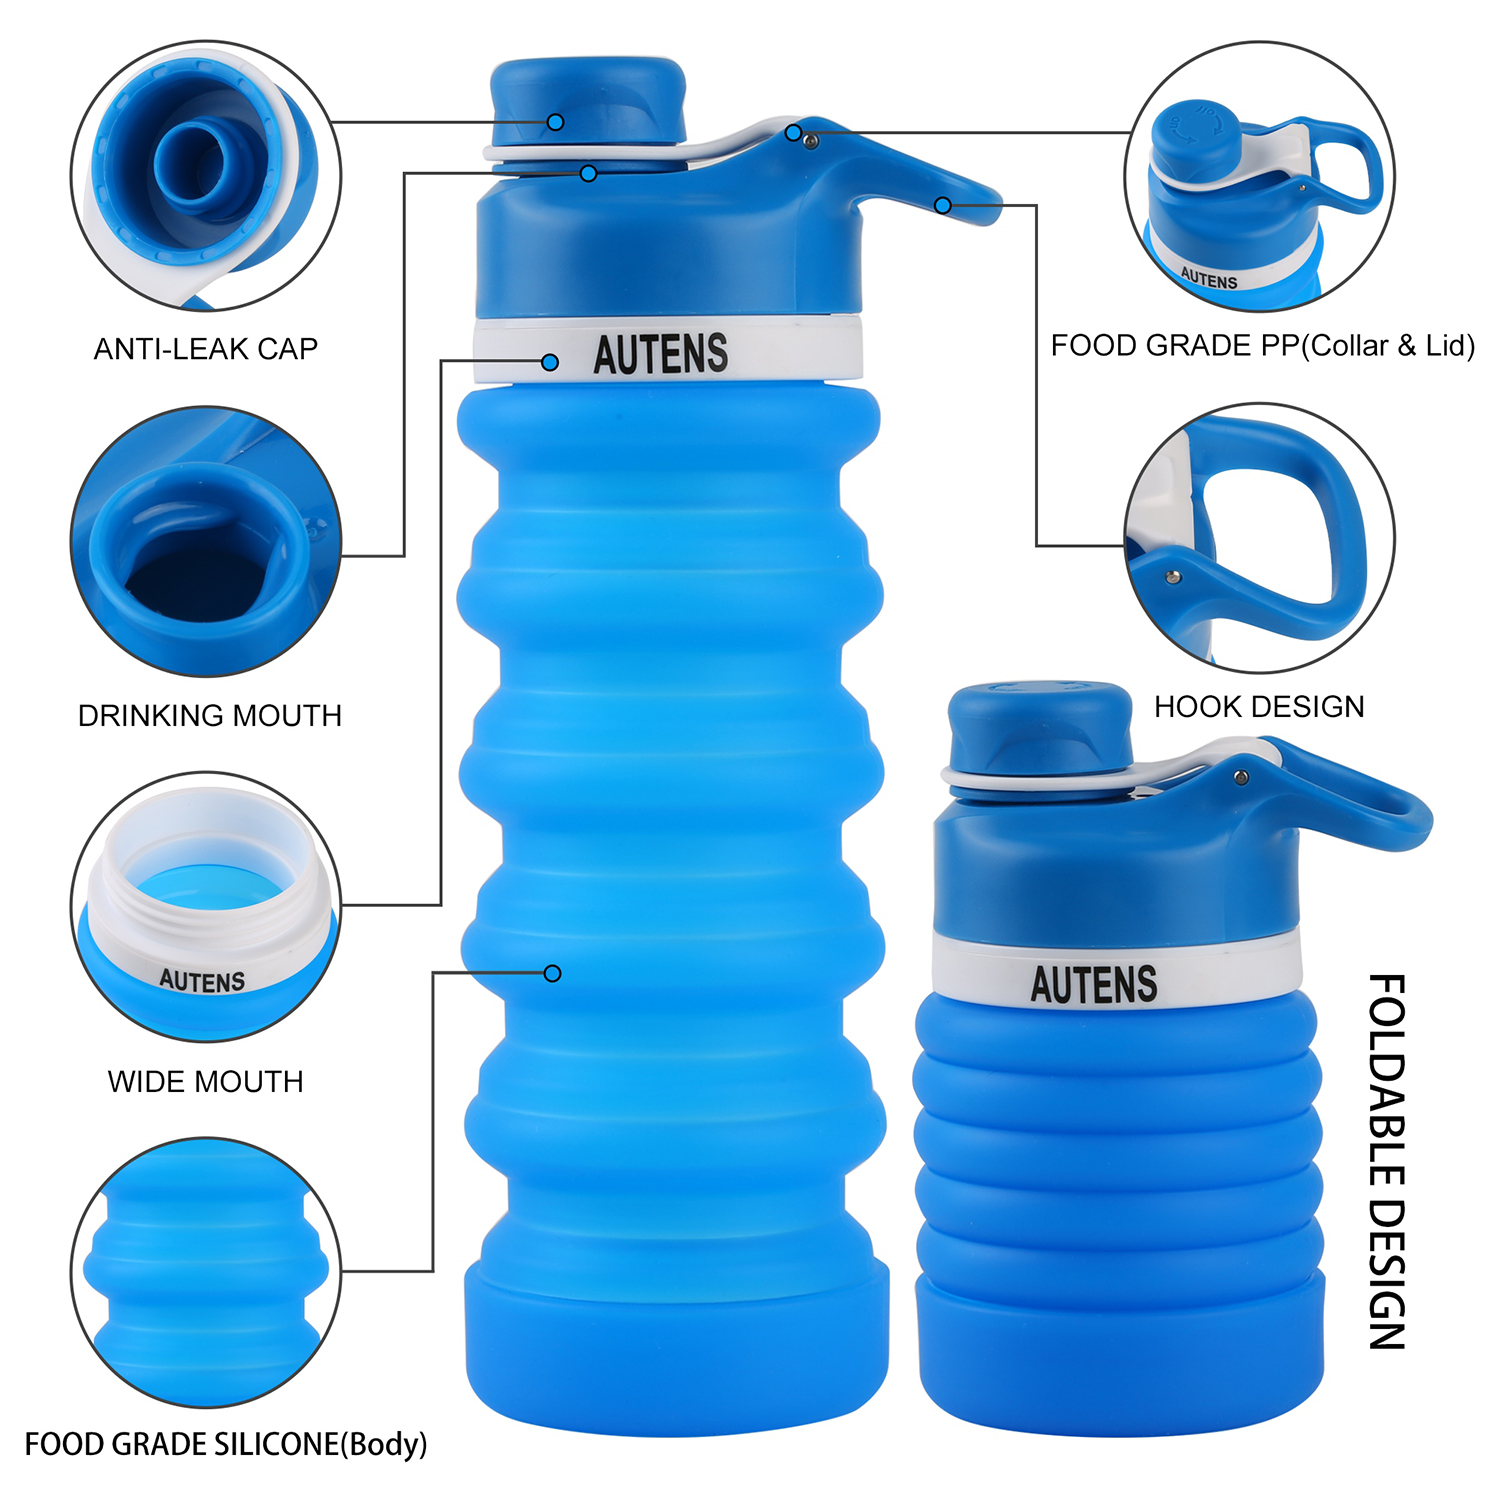 BPA Free Silicone Foldable Water Bottle for Travel ONTA Collapsible Water Bottle FDA Approved Food-Grade Silicone Portable Leak-Proof Travel Water Bottle 20oz